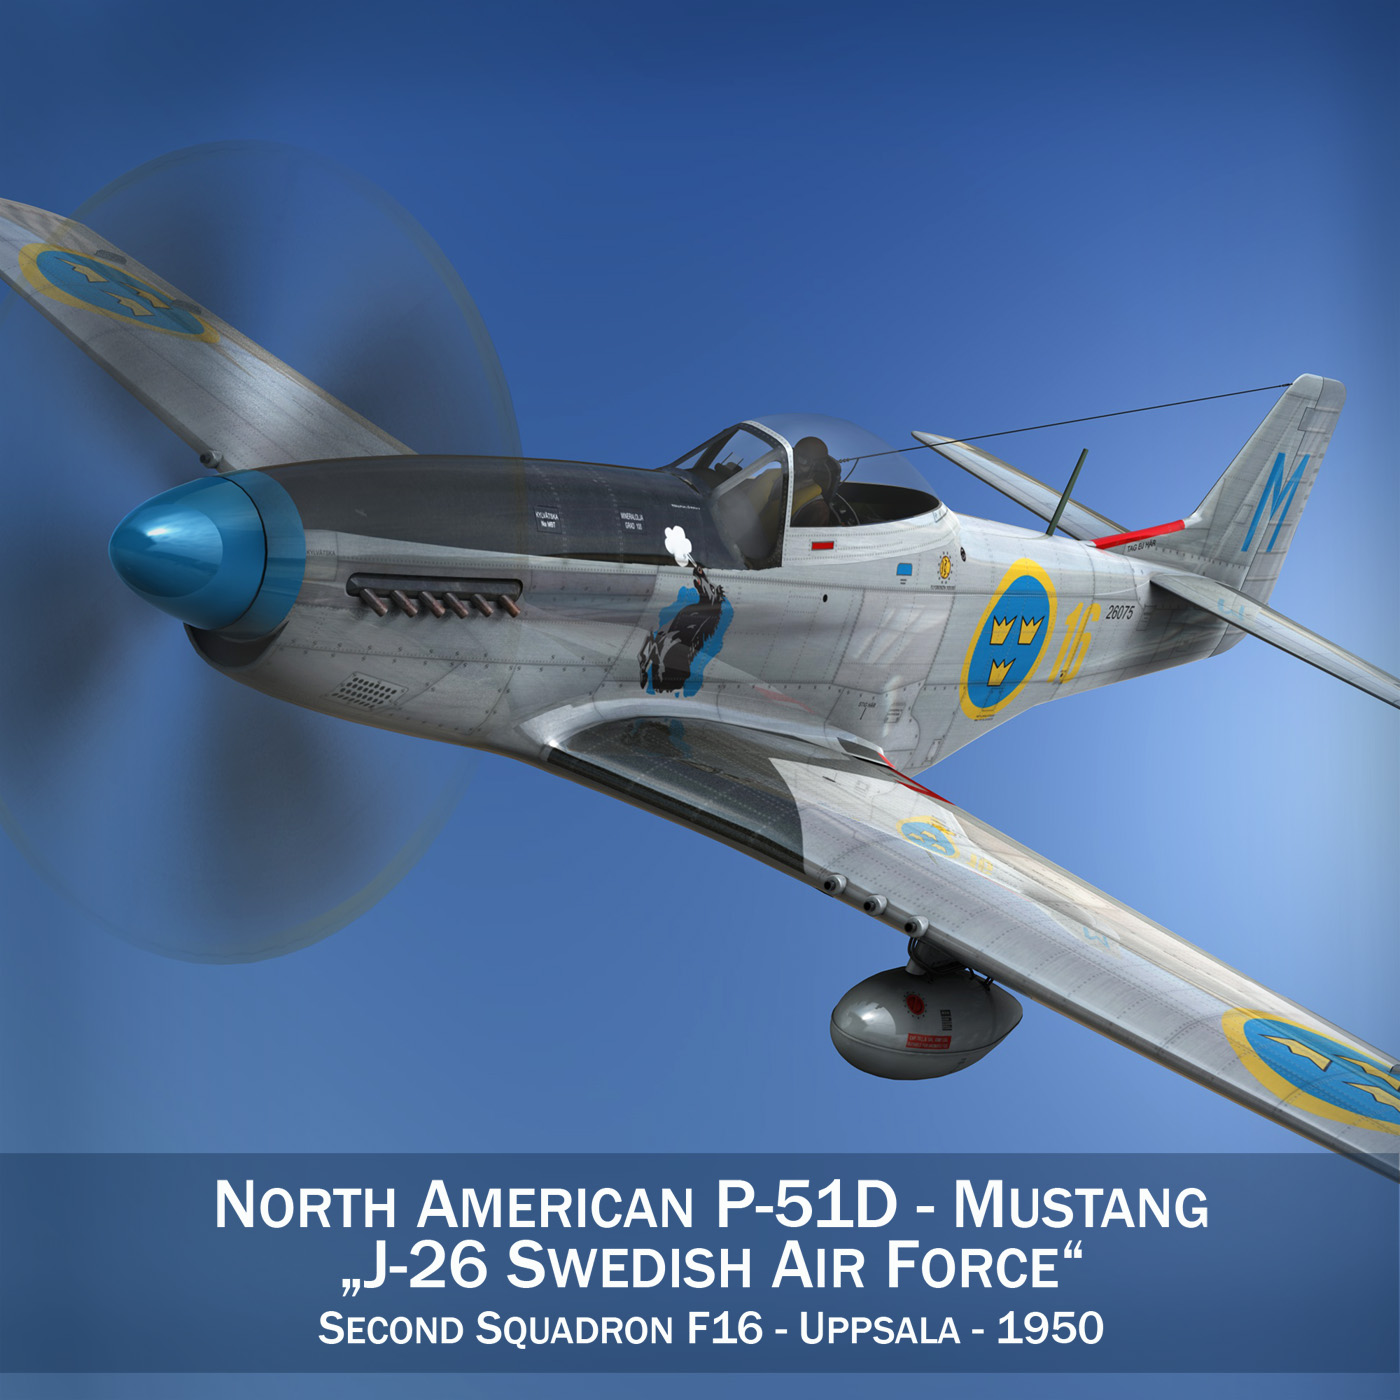 north american p-51d mustang – swedisch airforce 3d model fbx c4d lwo obj 268226